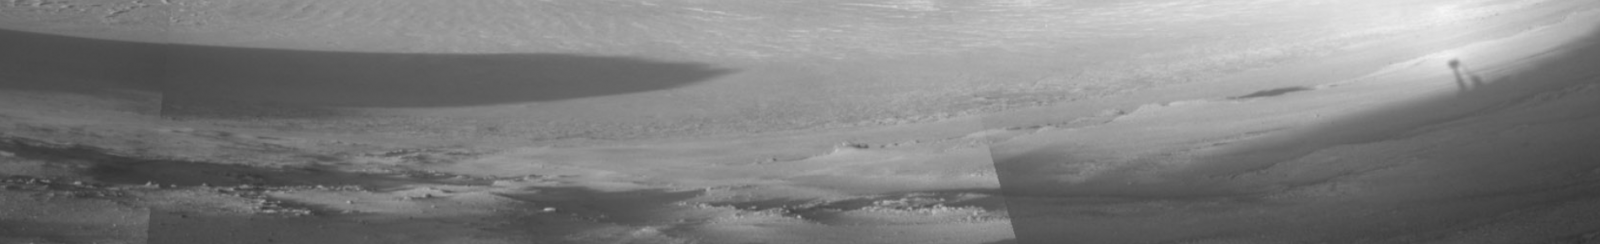 The shadow from Opportunity can be seen in the upper-right corner of the image as the late-afternoon sun casts shadows across Endurance Crater.